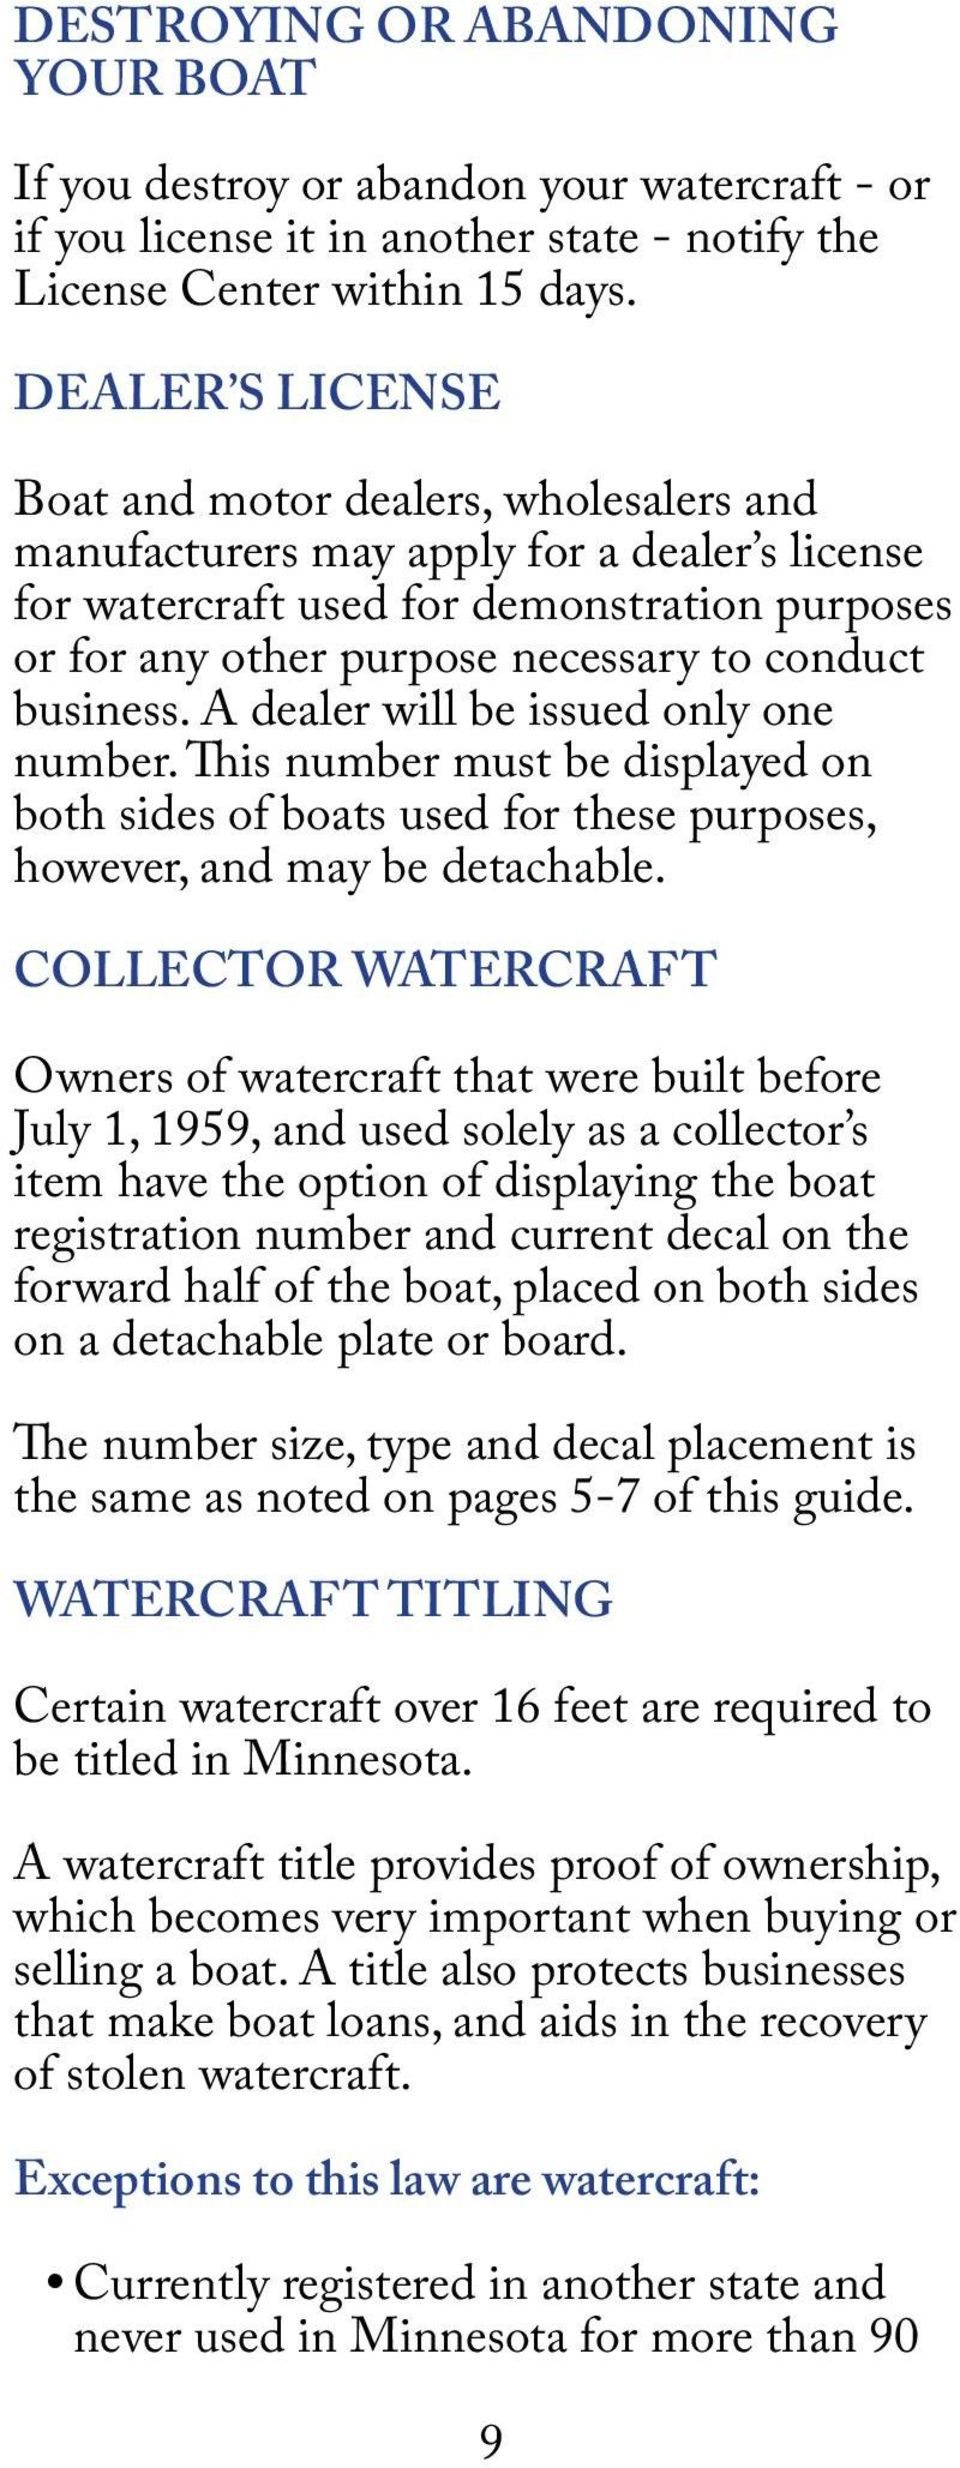 business. A dealer will be issued only one number. This number must be displayed on both sides of boats used for these purposes, however, and may be detachable.